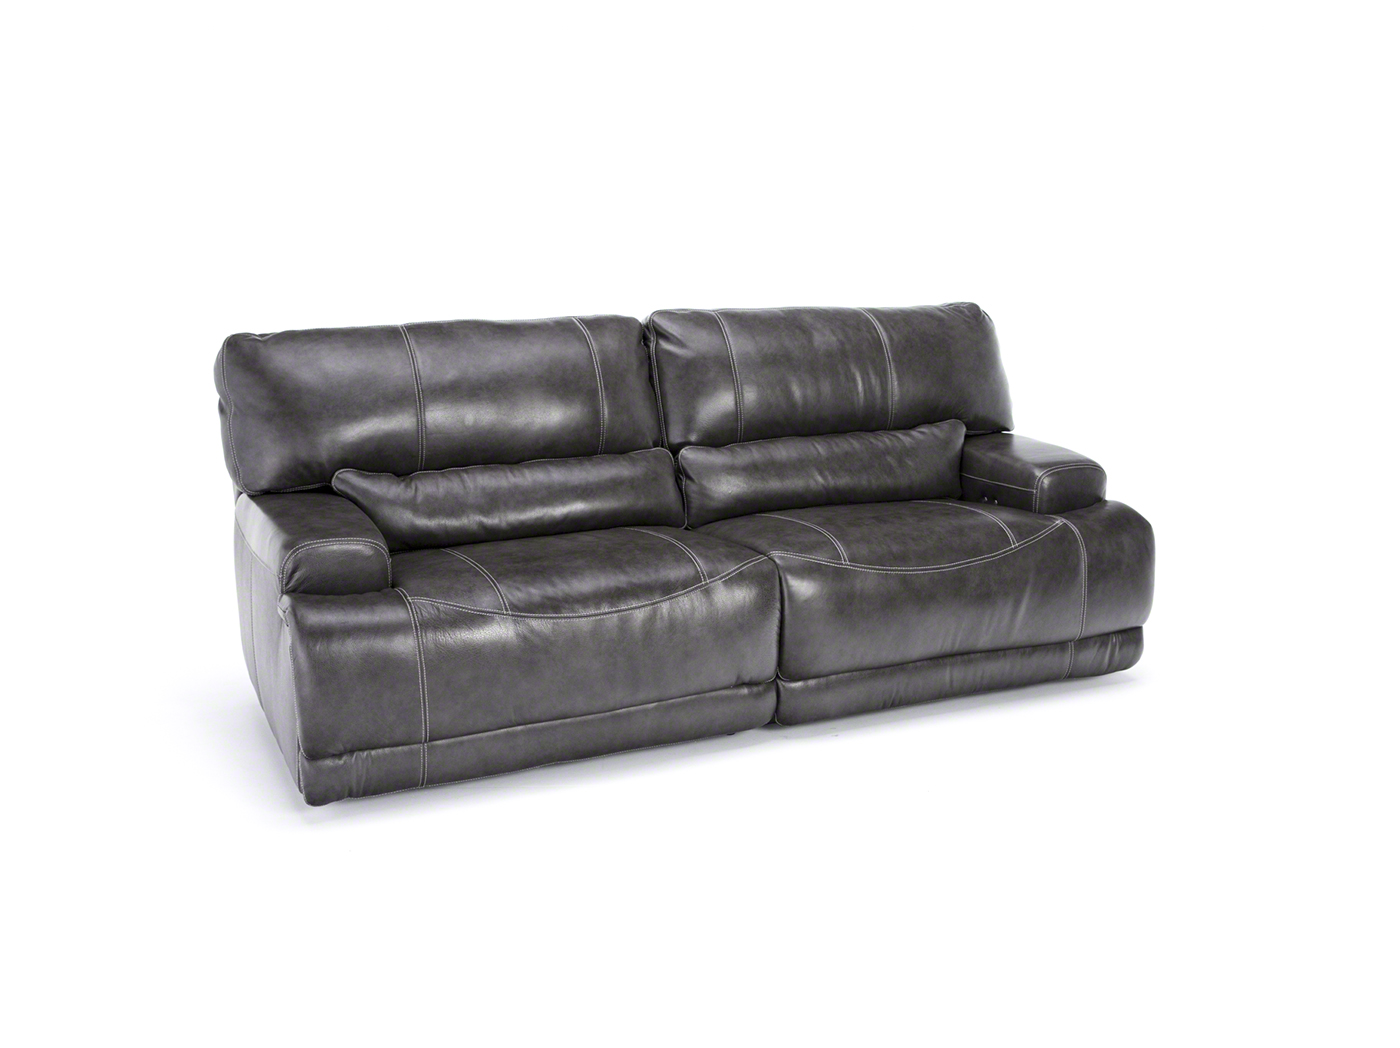 Steinhafels Placier Leather Power Recline Sofa